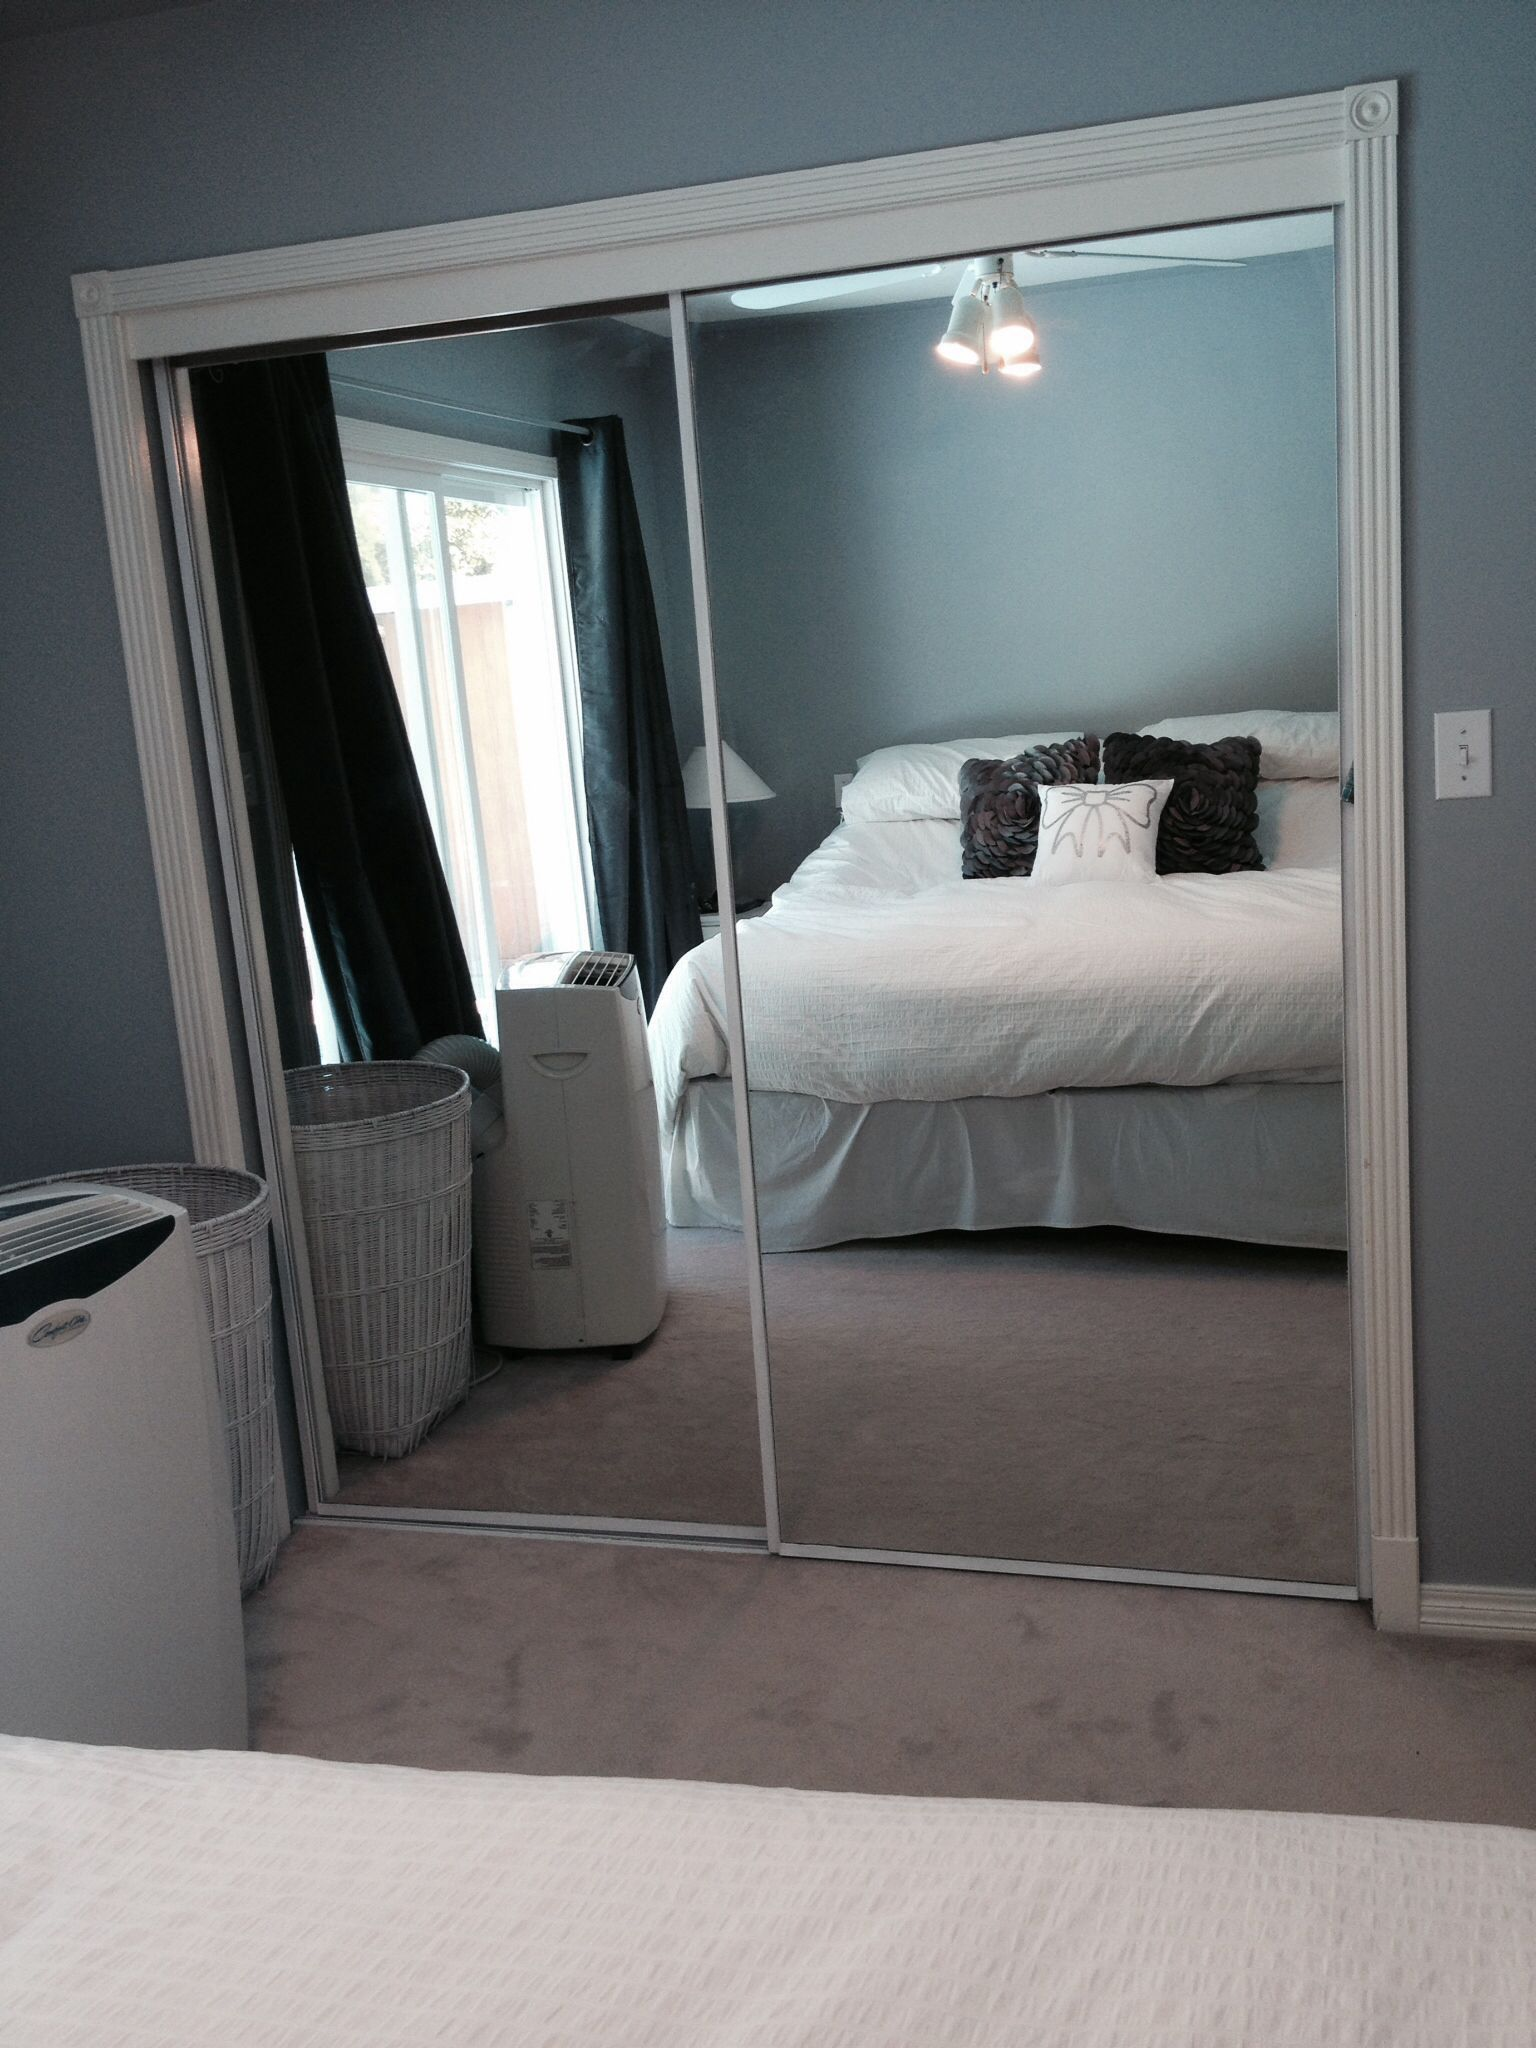 I painted the brass trimmed mirror closet doors white